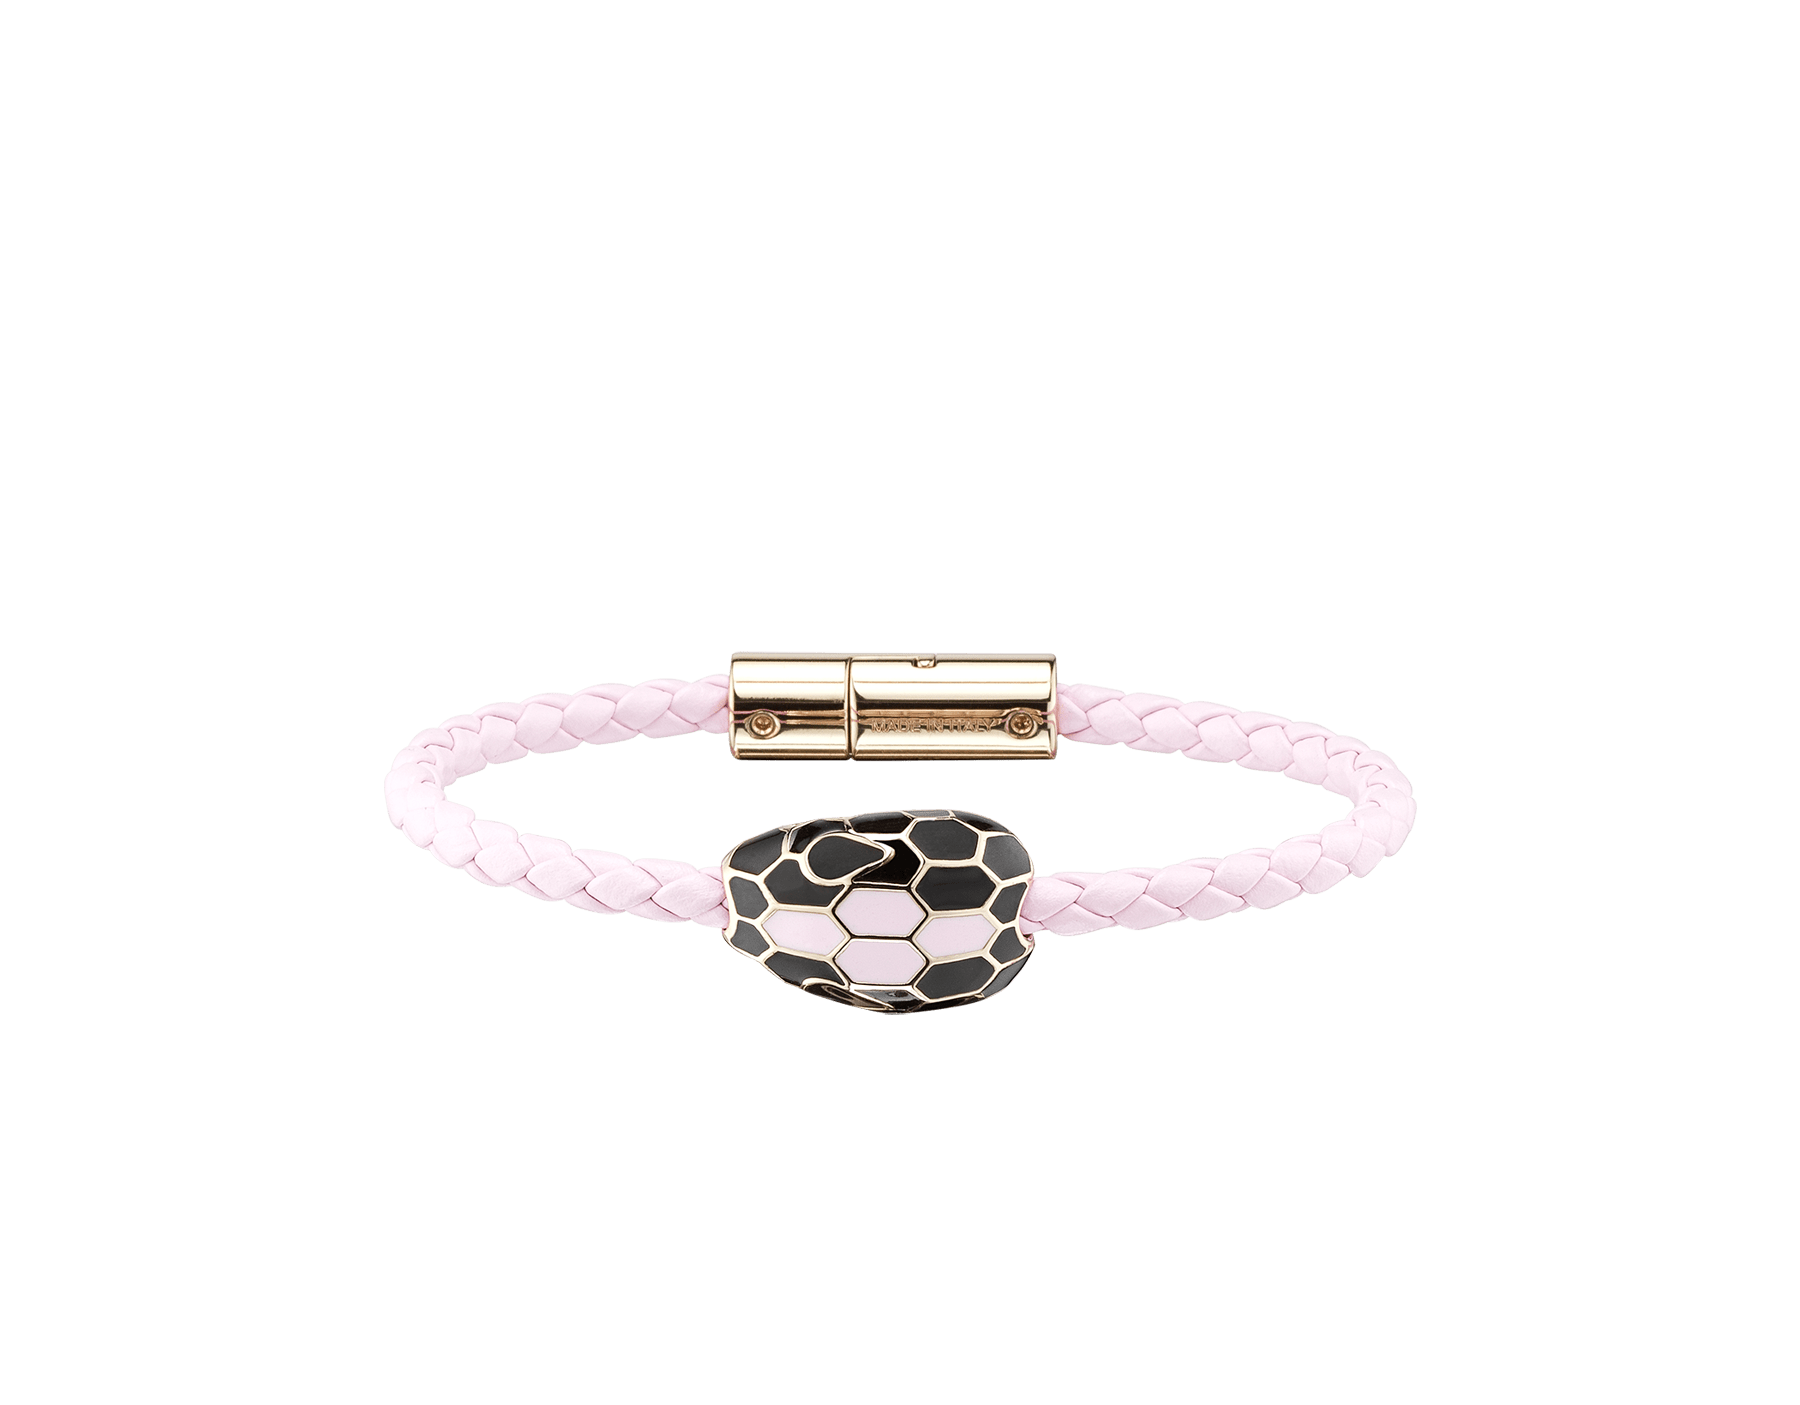 Serpenti Forever braid bracelet in rosa di francia woven calf leather with the iconic snakehead décor in black and rosa di francia enamel. SerpBraid-WCL-RdF image 1